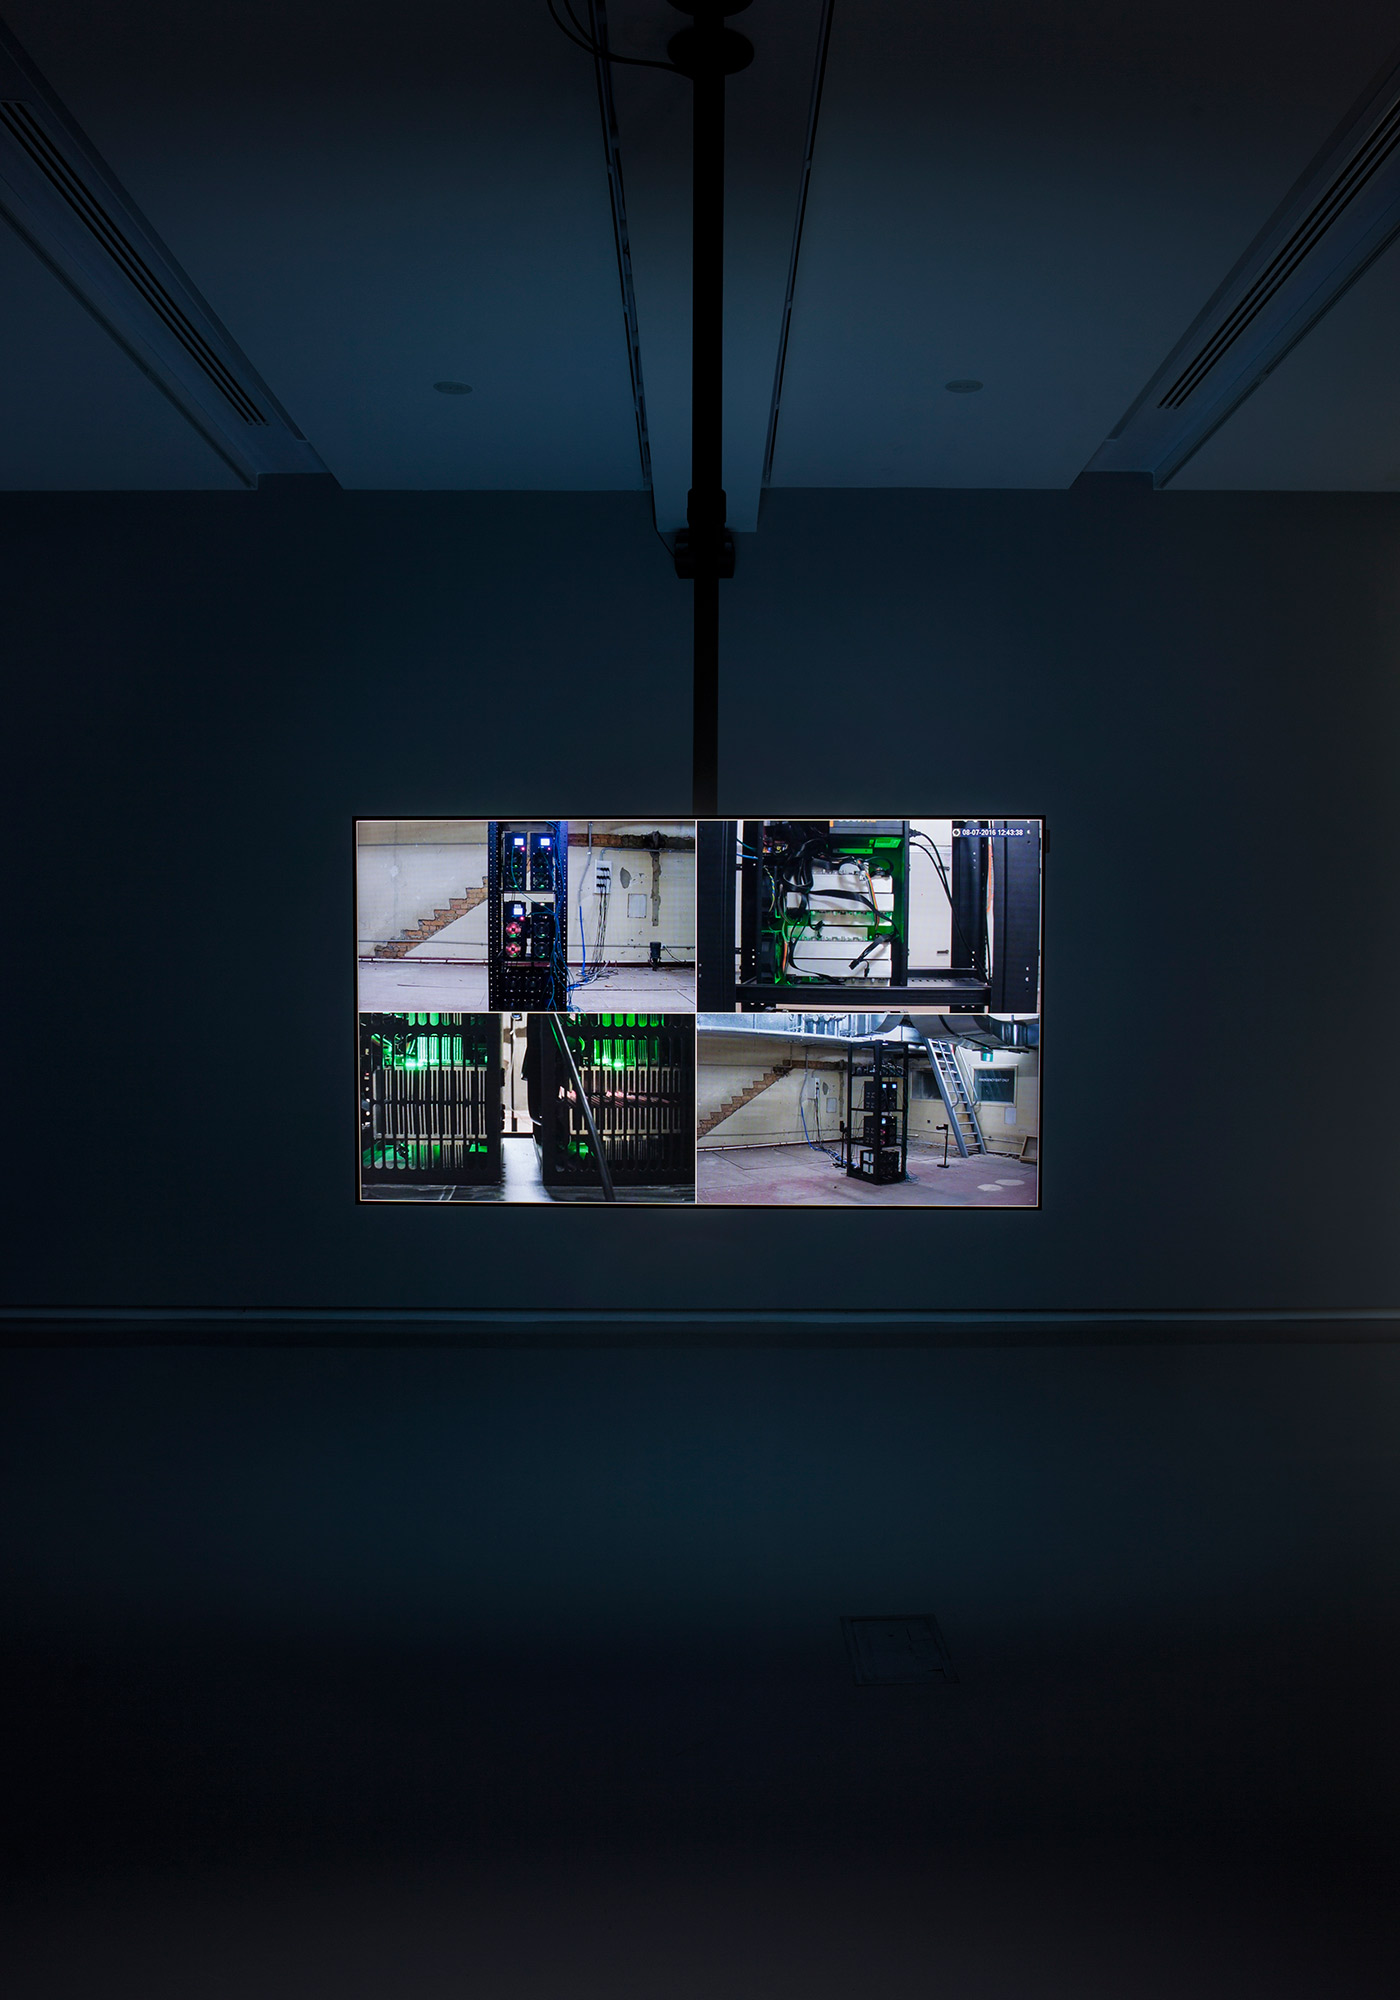 Nicholas Mangan, *Limits to Growth*, 2016, single channel HD video, sound, colour, 7:56, continuous loop. Installation view, Monash University Museum of Art, Melbourne, 2016. Photographer: Andrew Curtis.